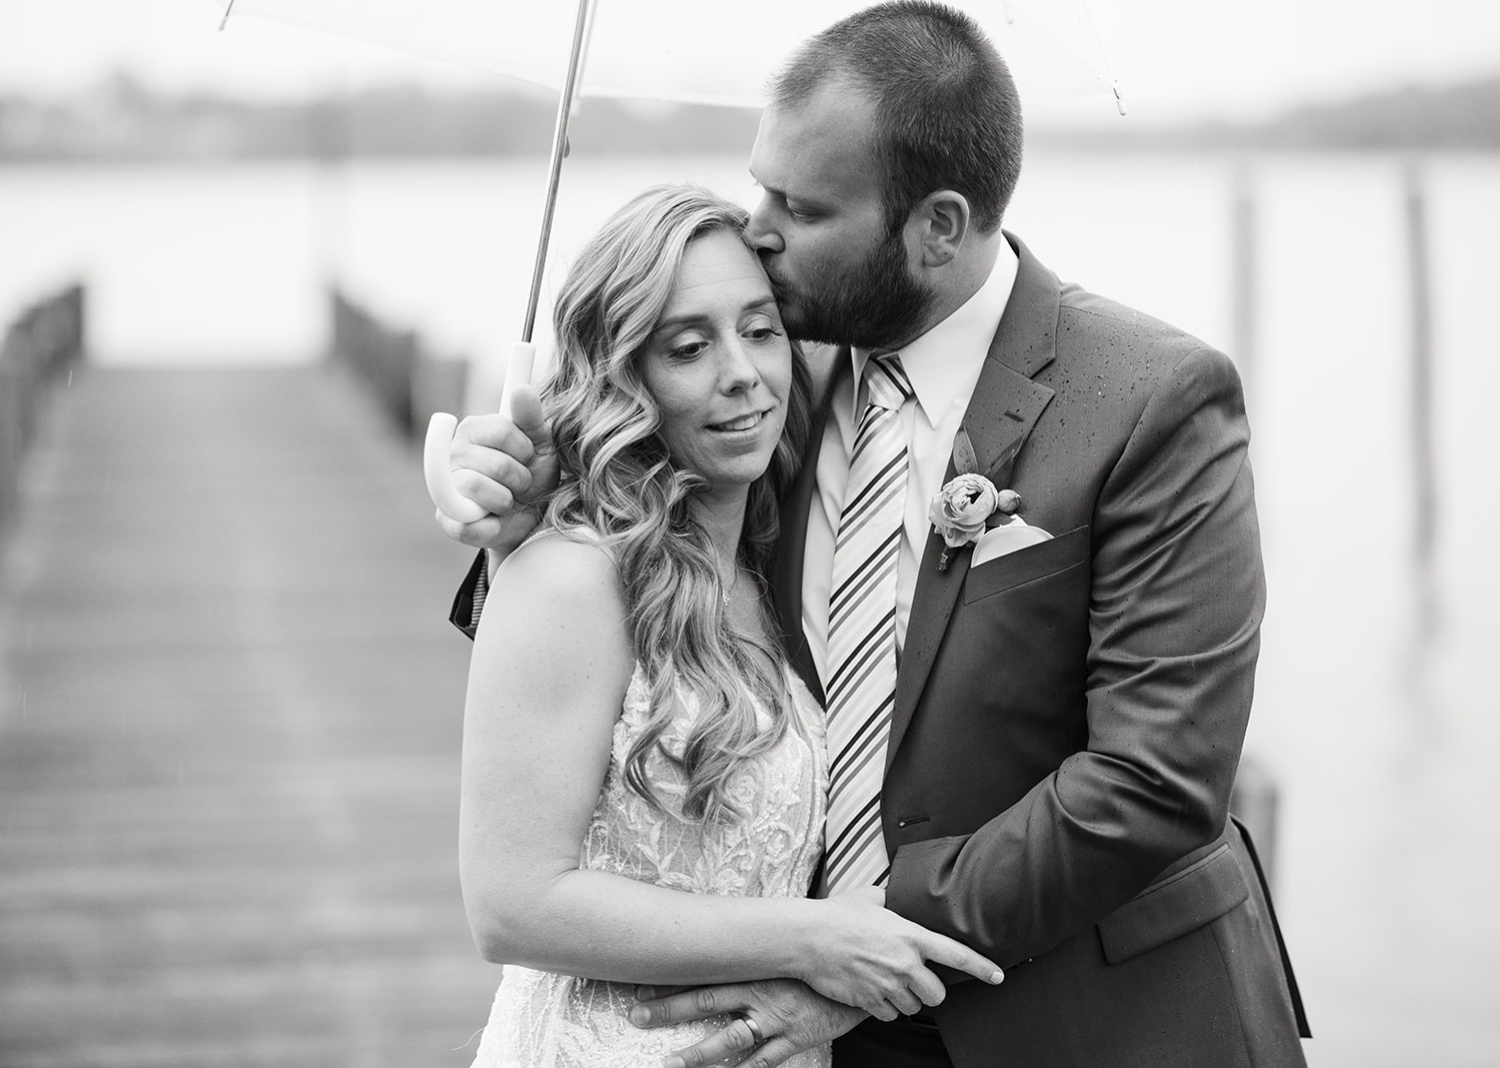 outdoor wedding portraits of the bride and the groom on a rainy deck